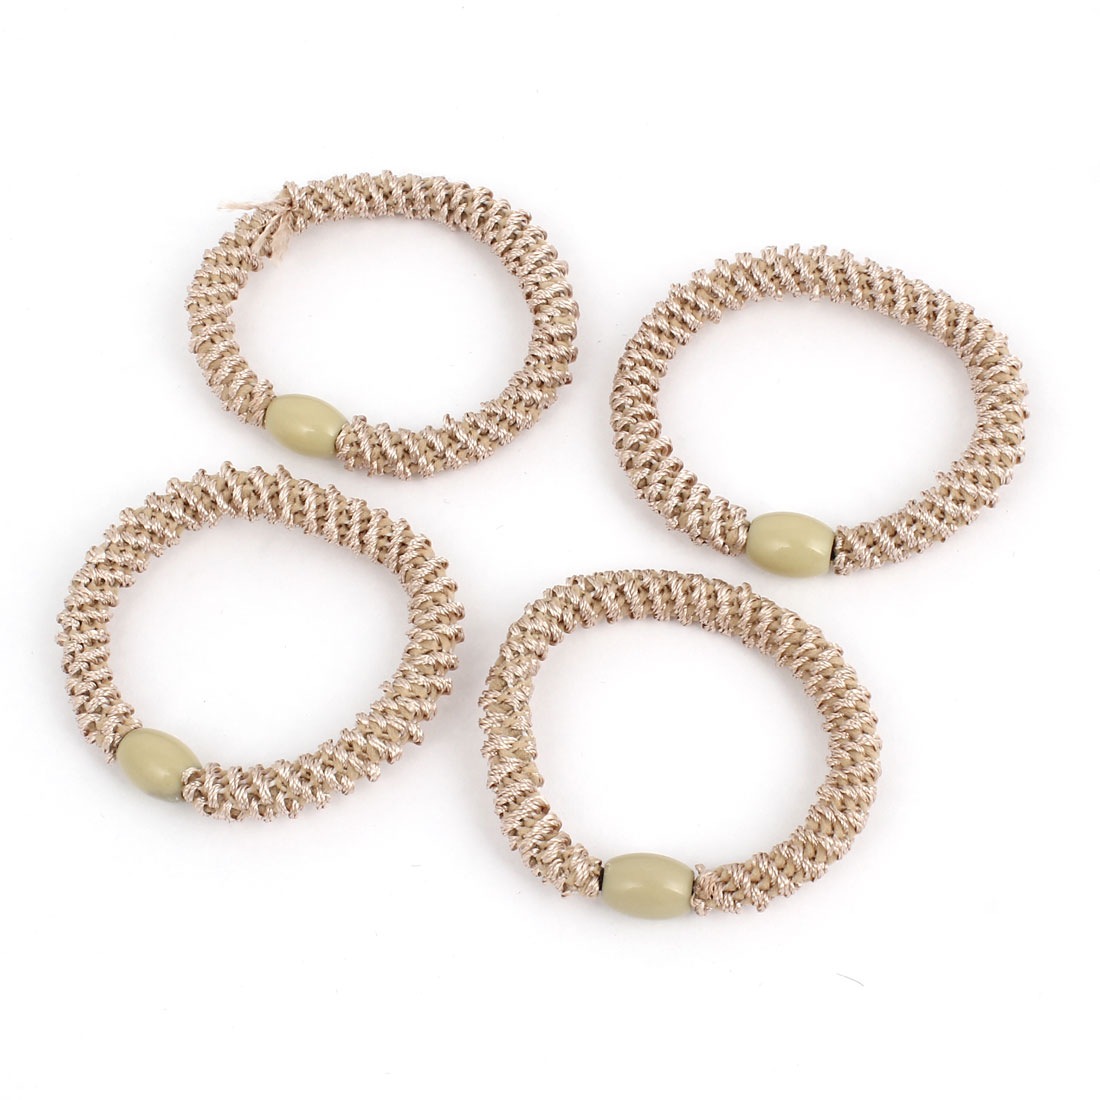 4Pcs Beige Plastic Beads Detail Elastic Tie Ponytail Holders for Ladies